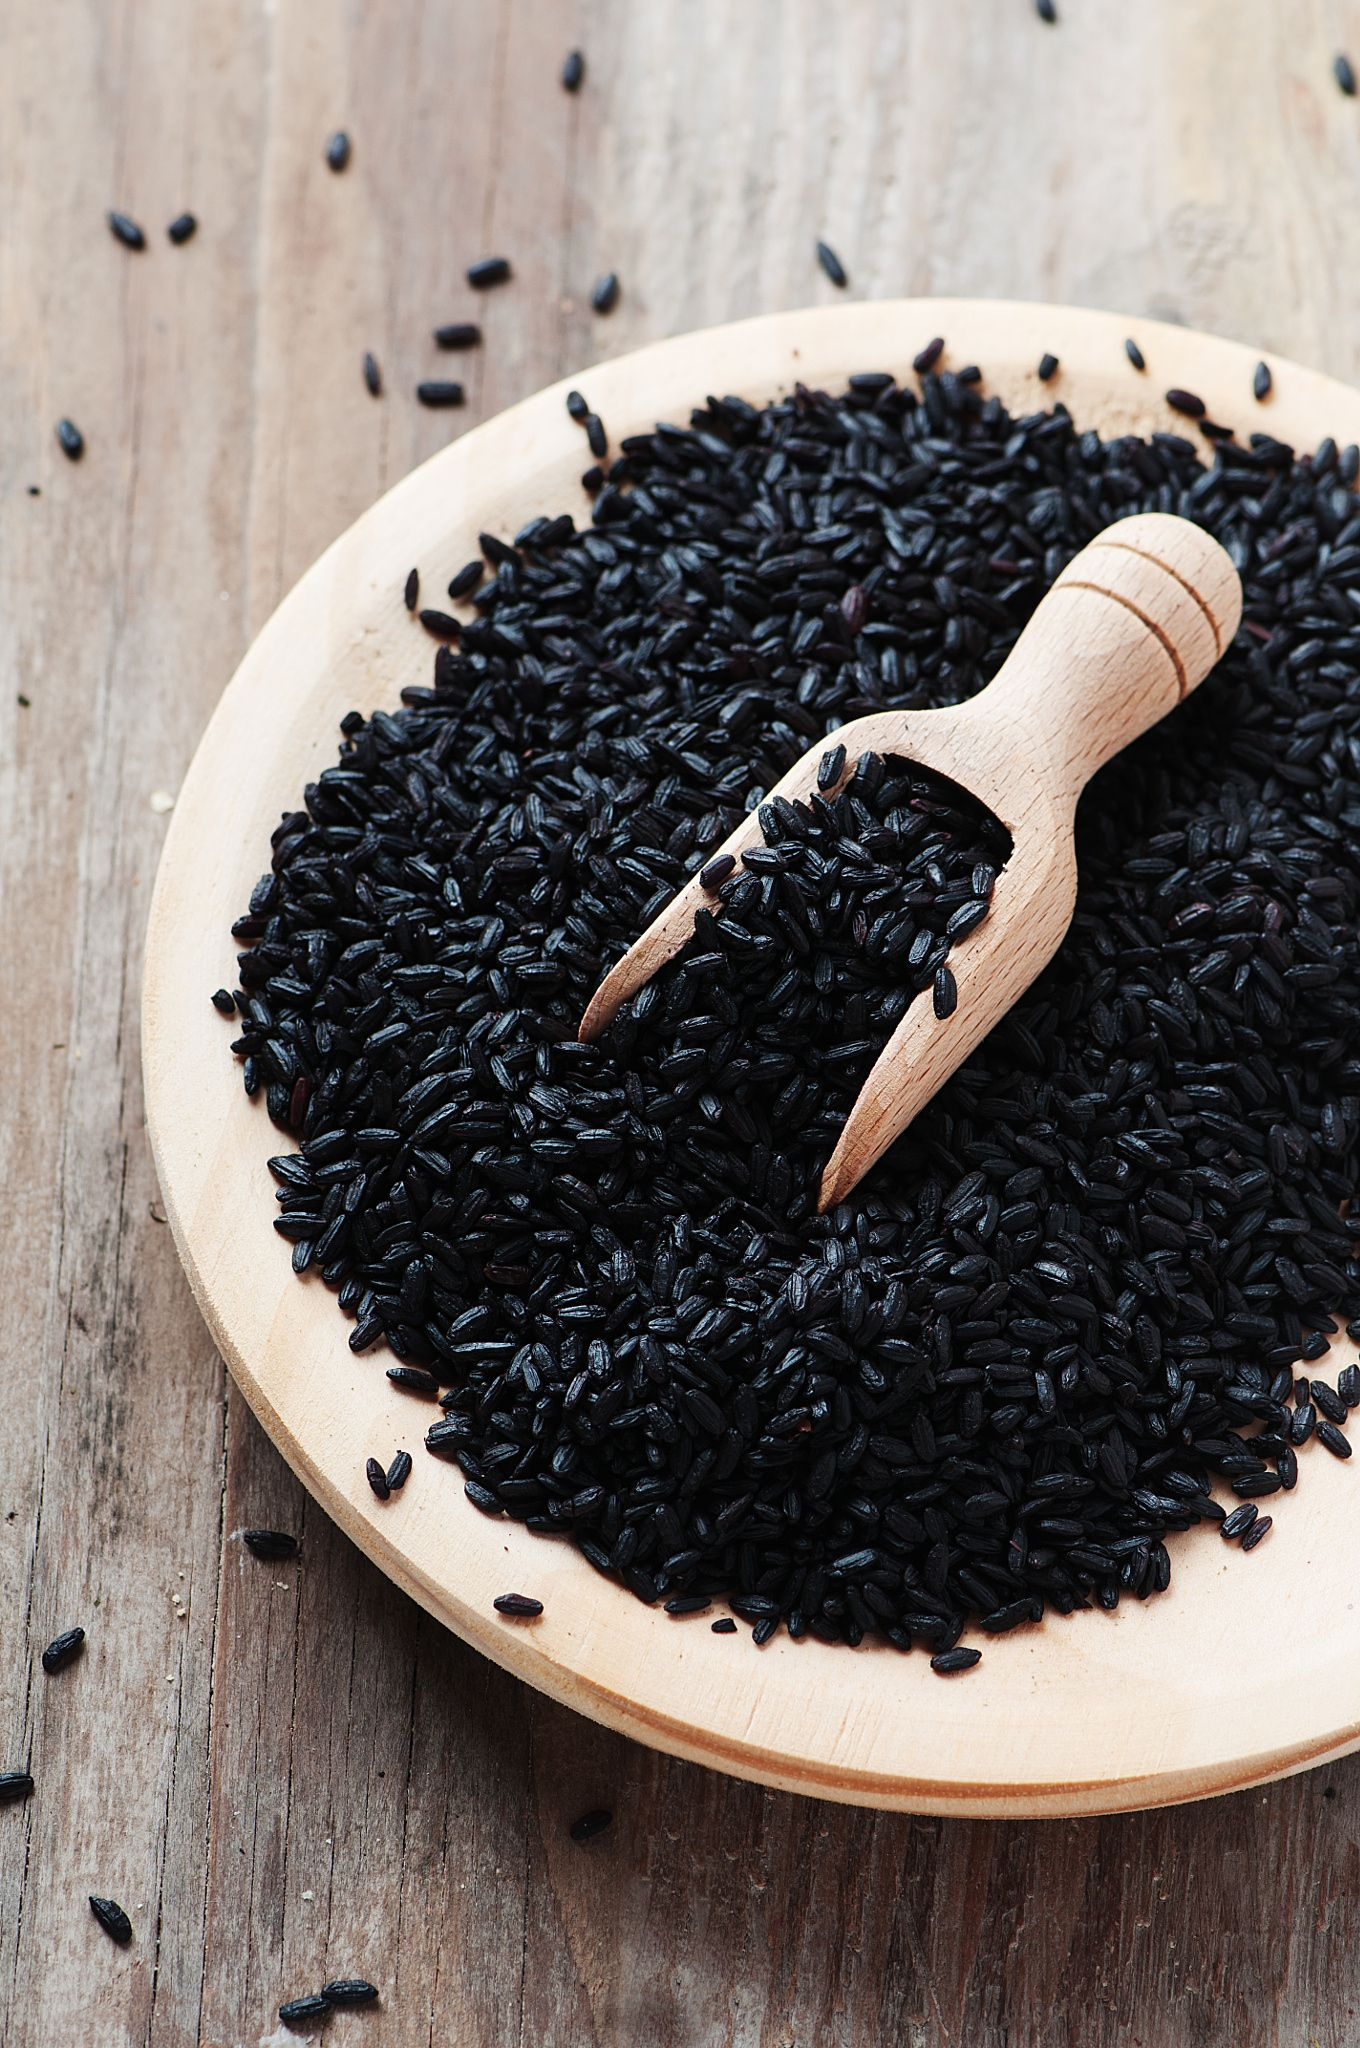 Black uncooked rice on the wooden table by Oxana Denezhkina on 500px